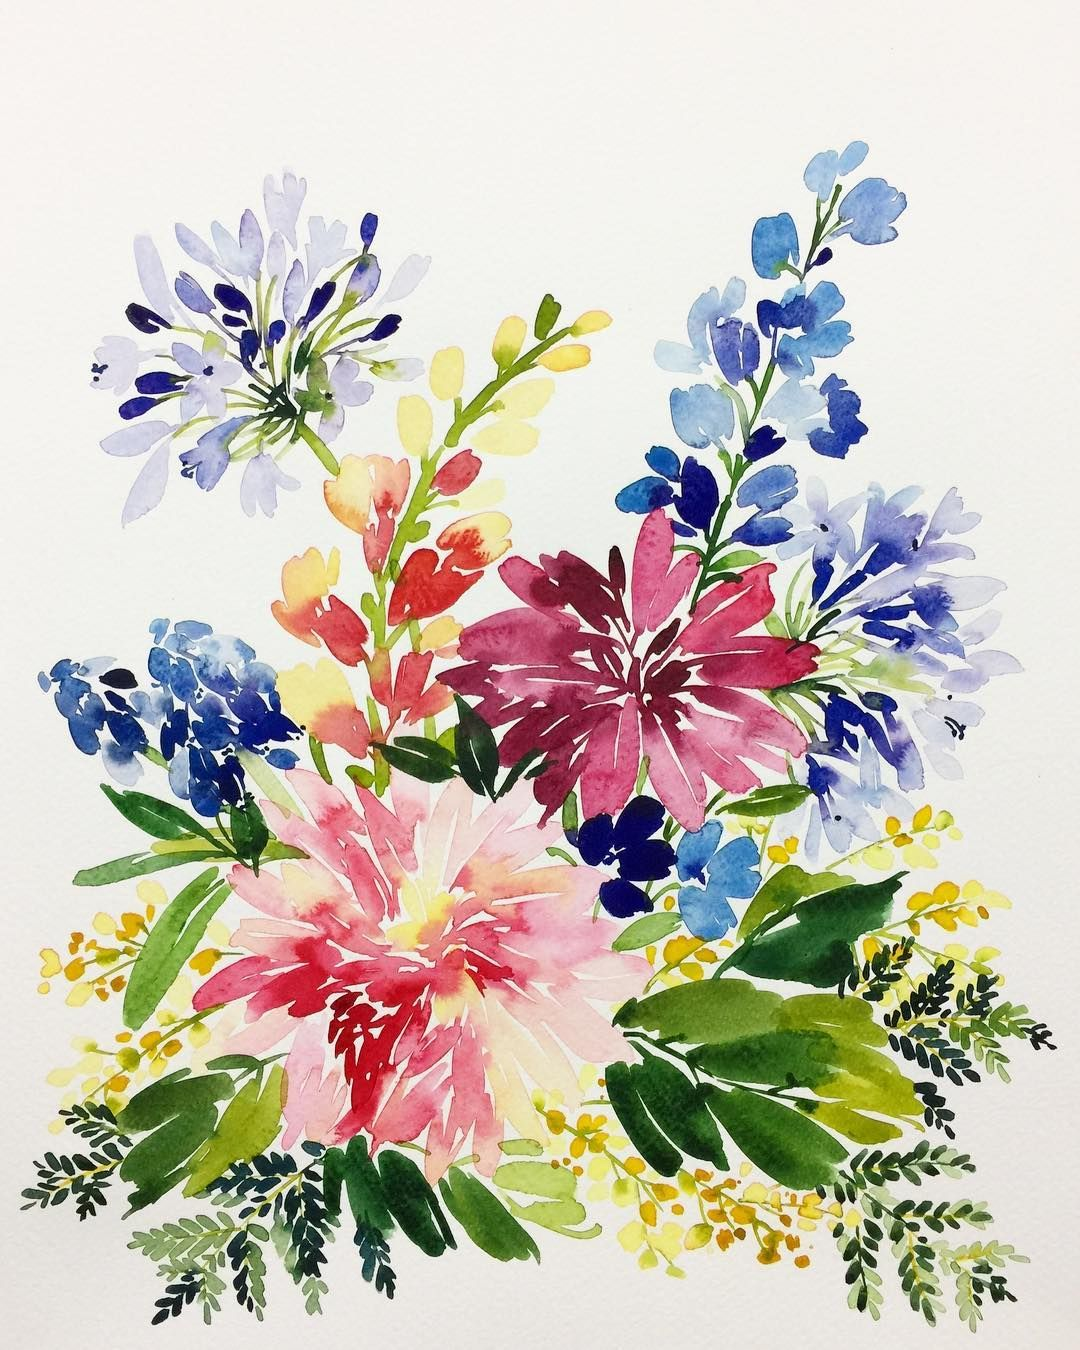 Pin By Ashna Vakharia On Watercolour Watercolor Flowers Floral